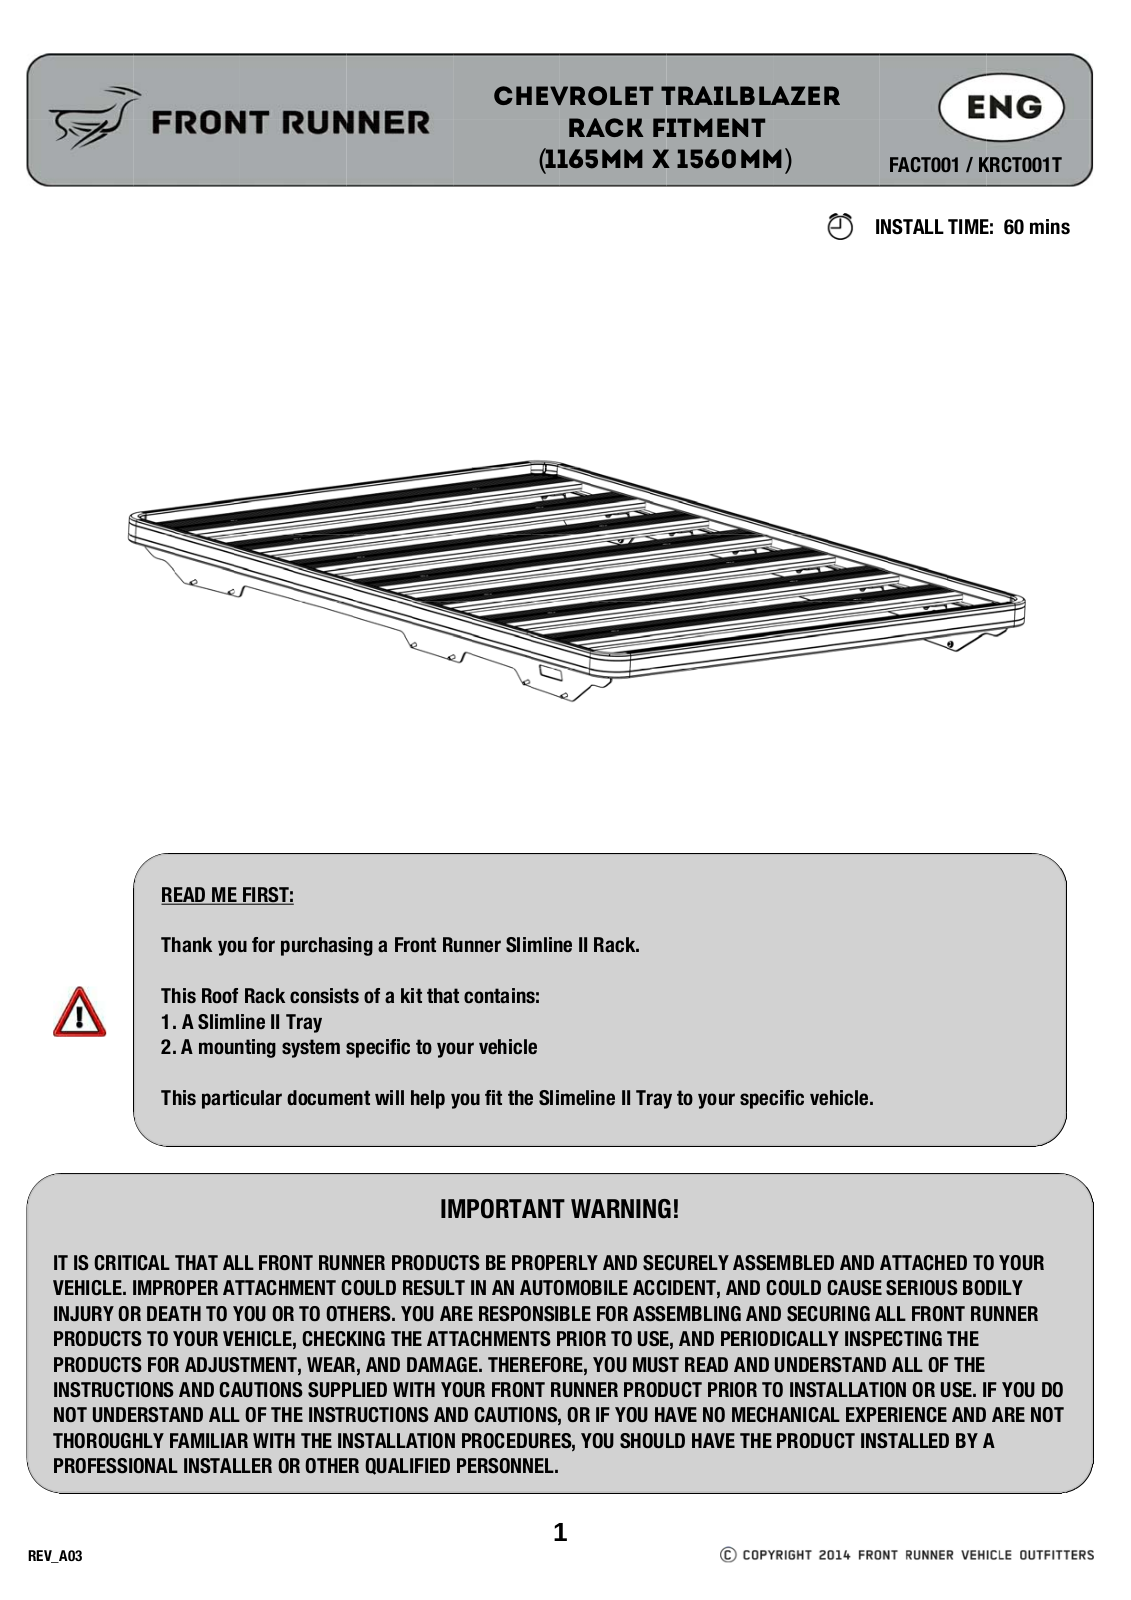 Installation instructions for FACT001